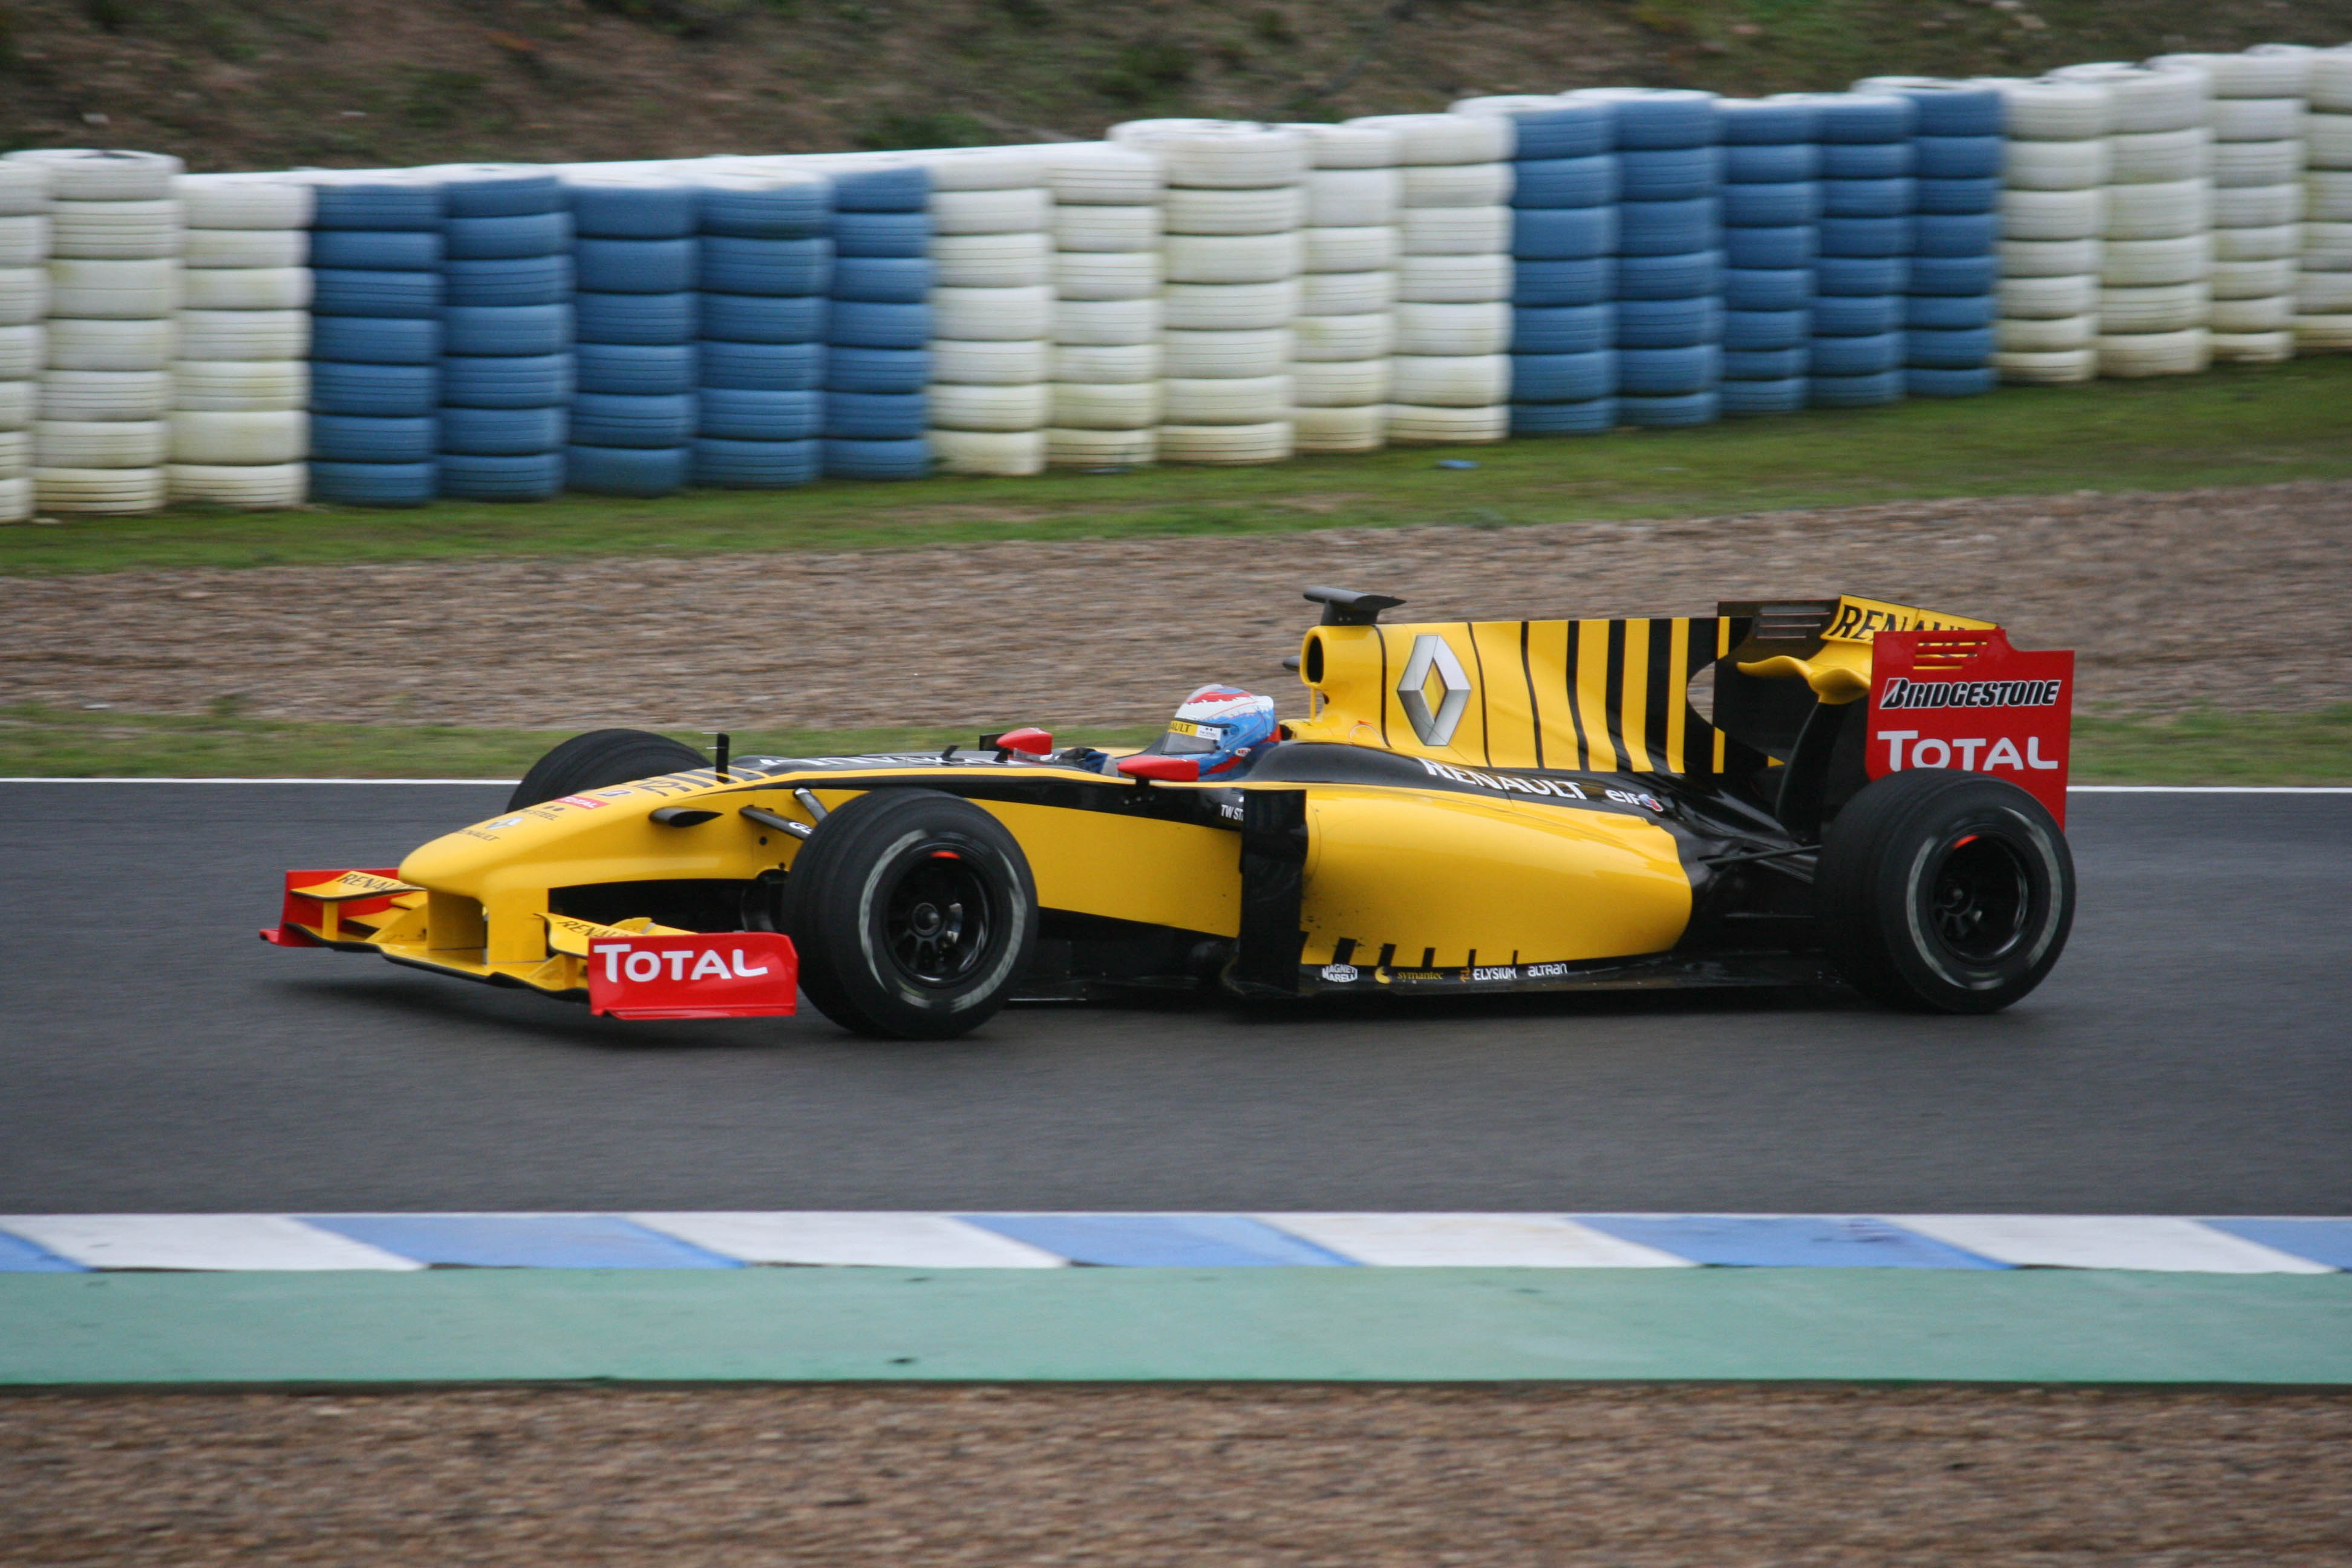 Renault r24 photo - 3